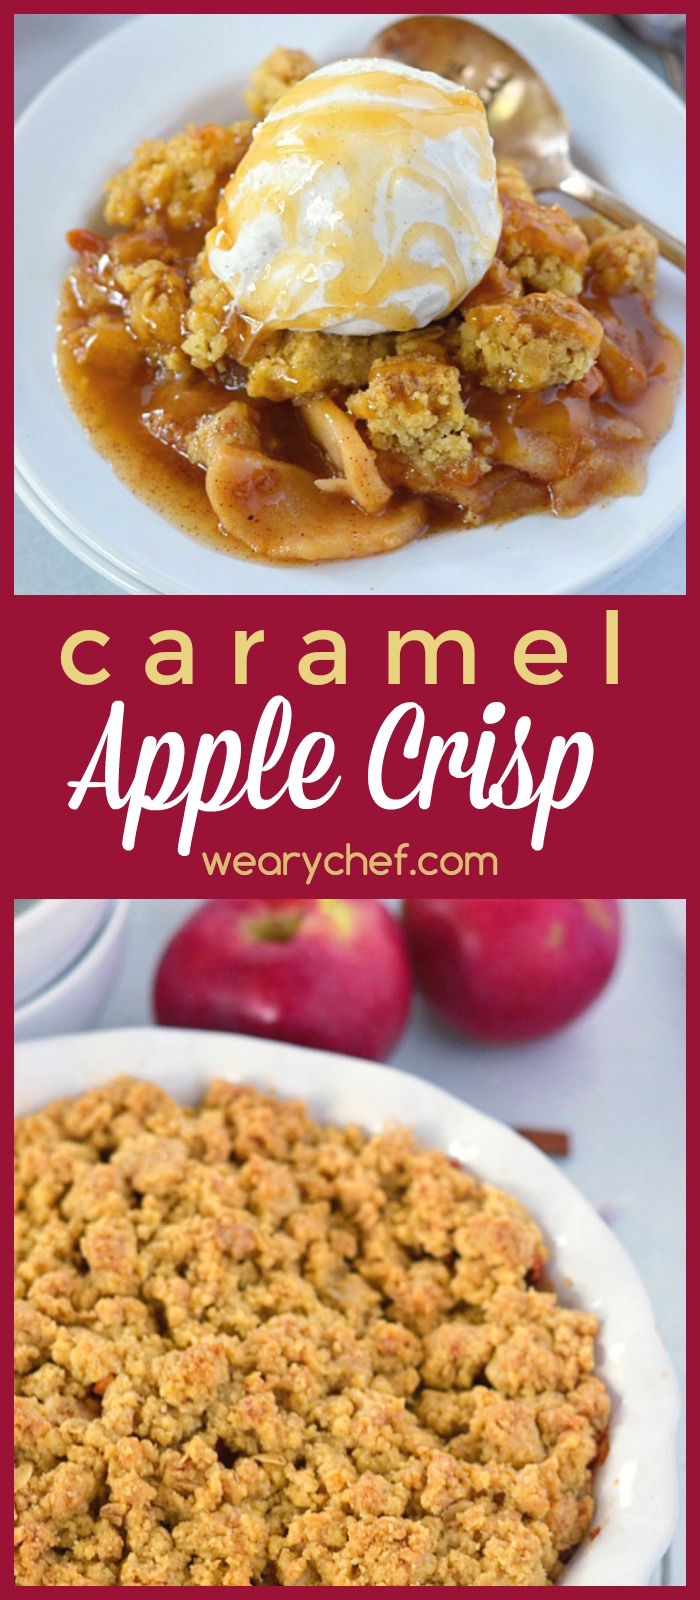 This Caramel Apple Crisp is one of my favorite fall desserts, and I know you will love this dessert recipe too!